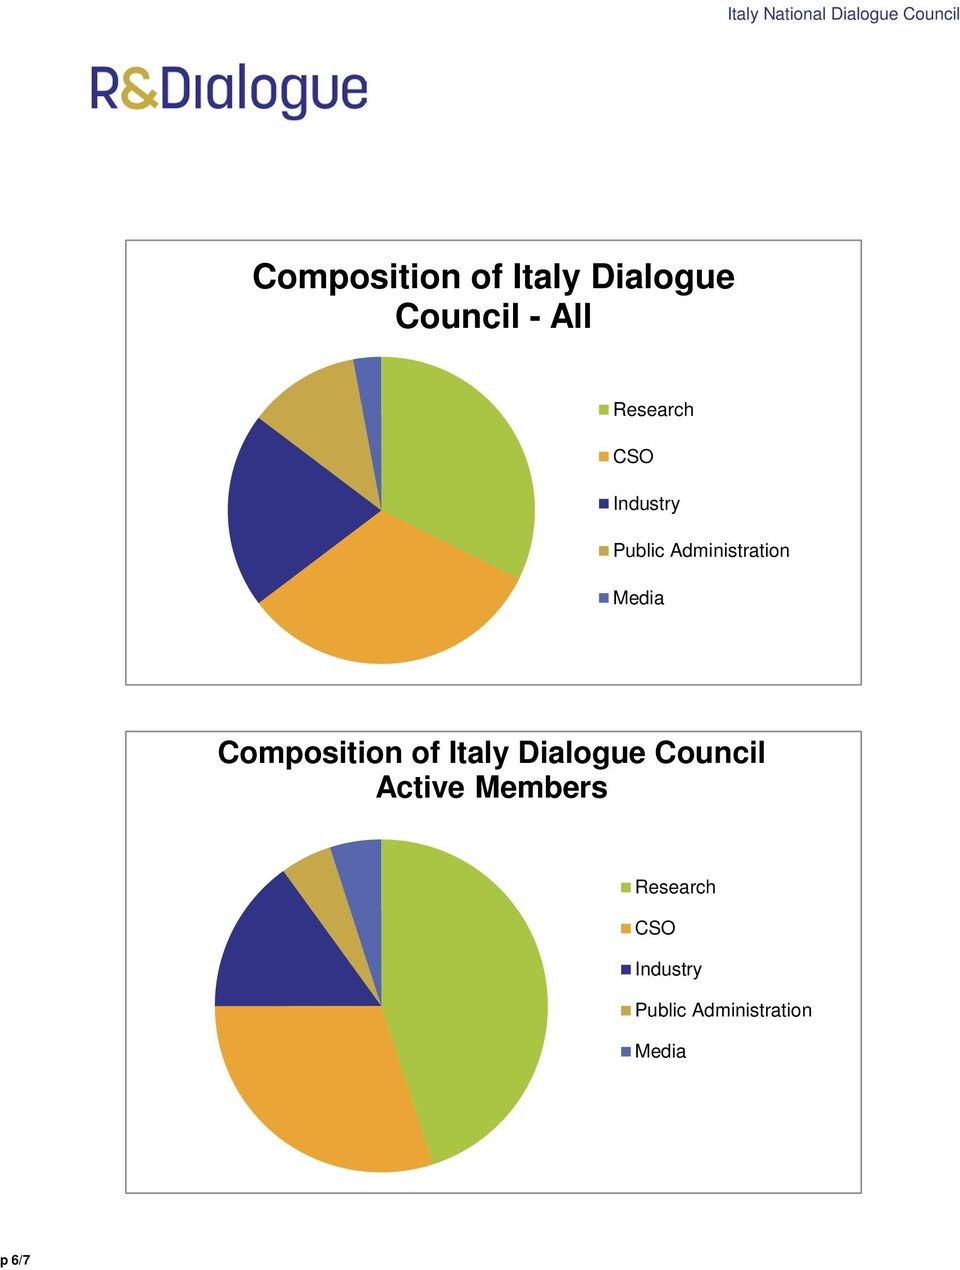 Composition of Italy Dialogue Council Active